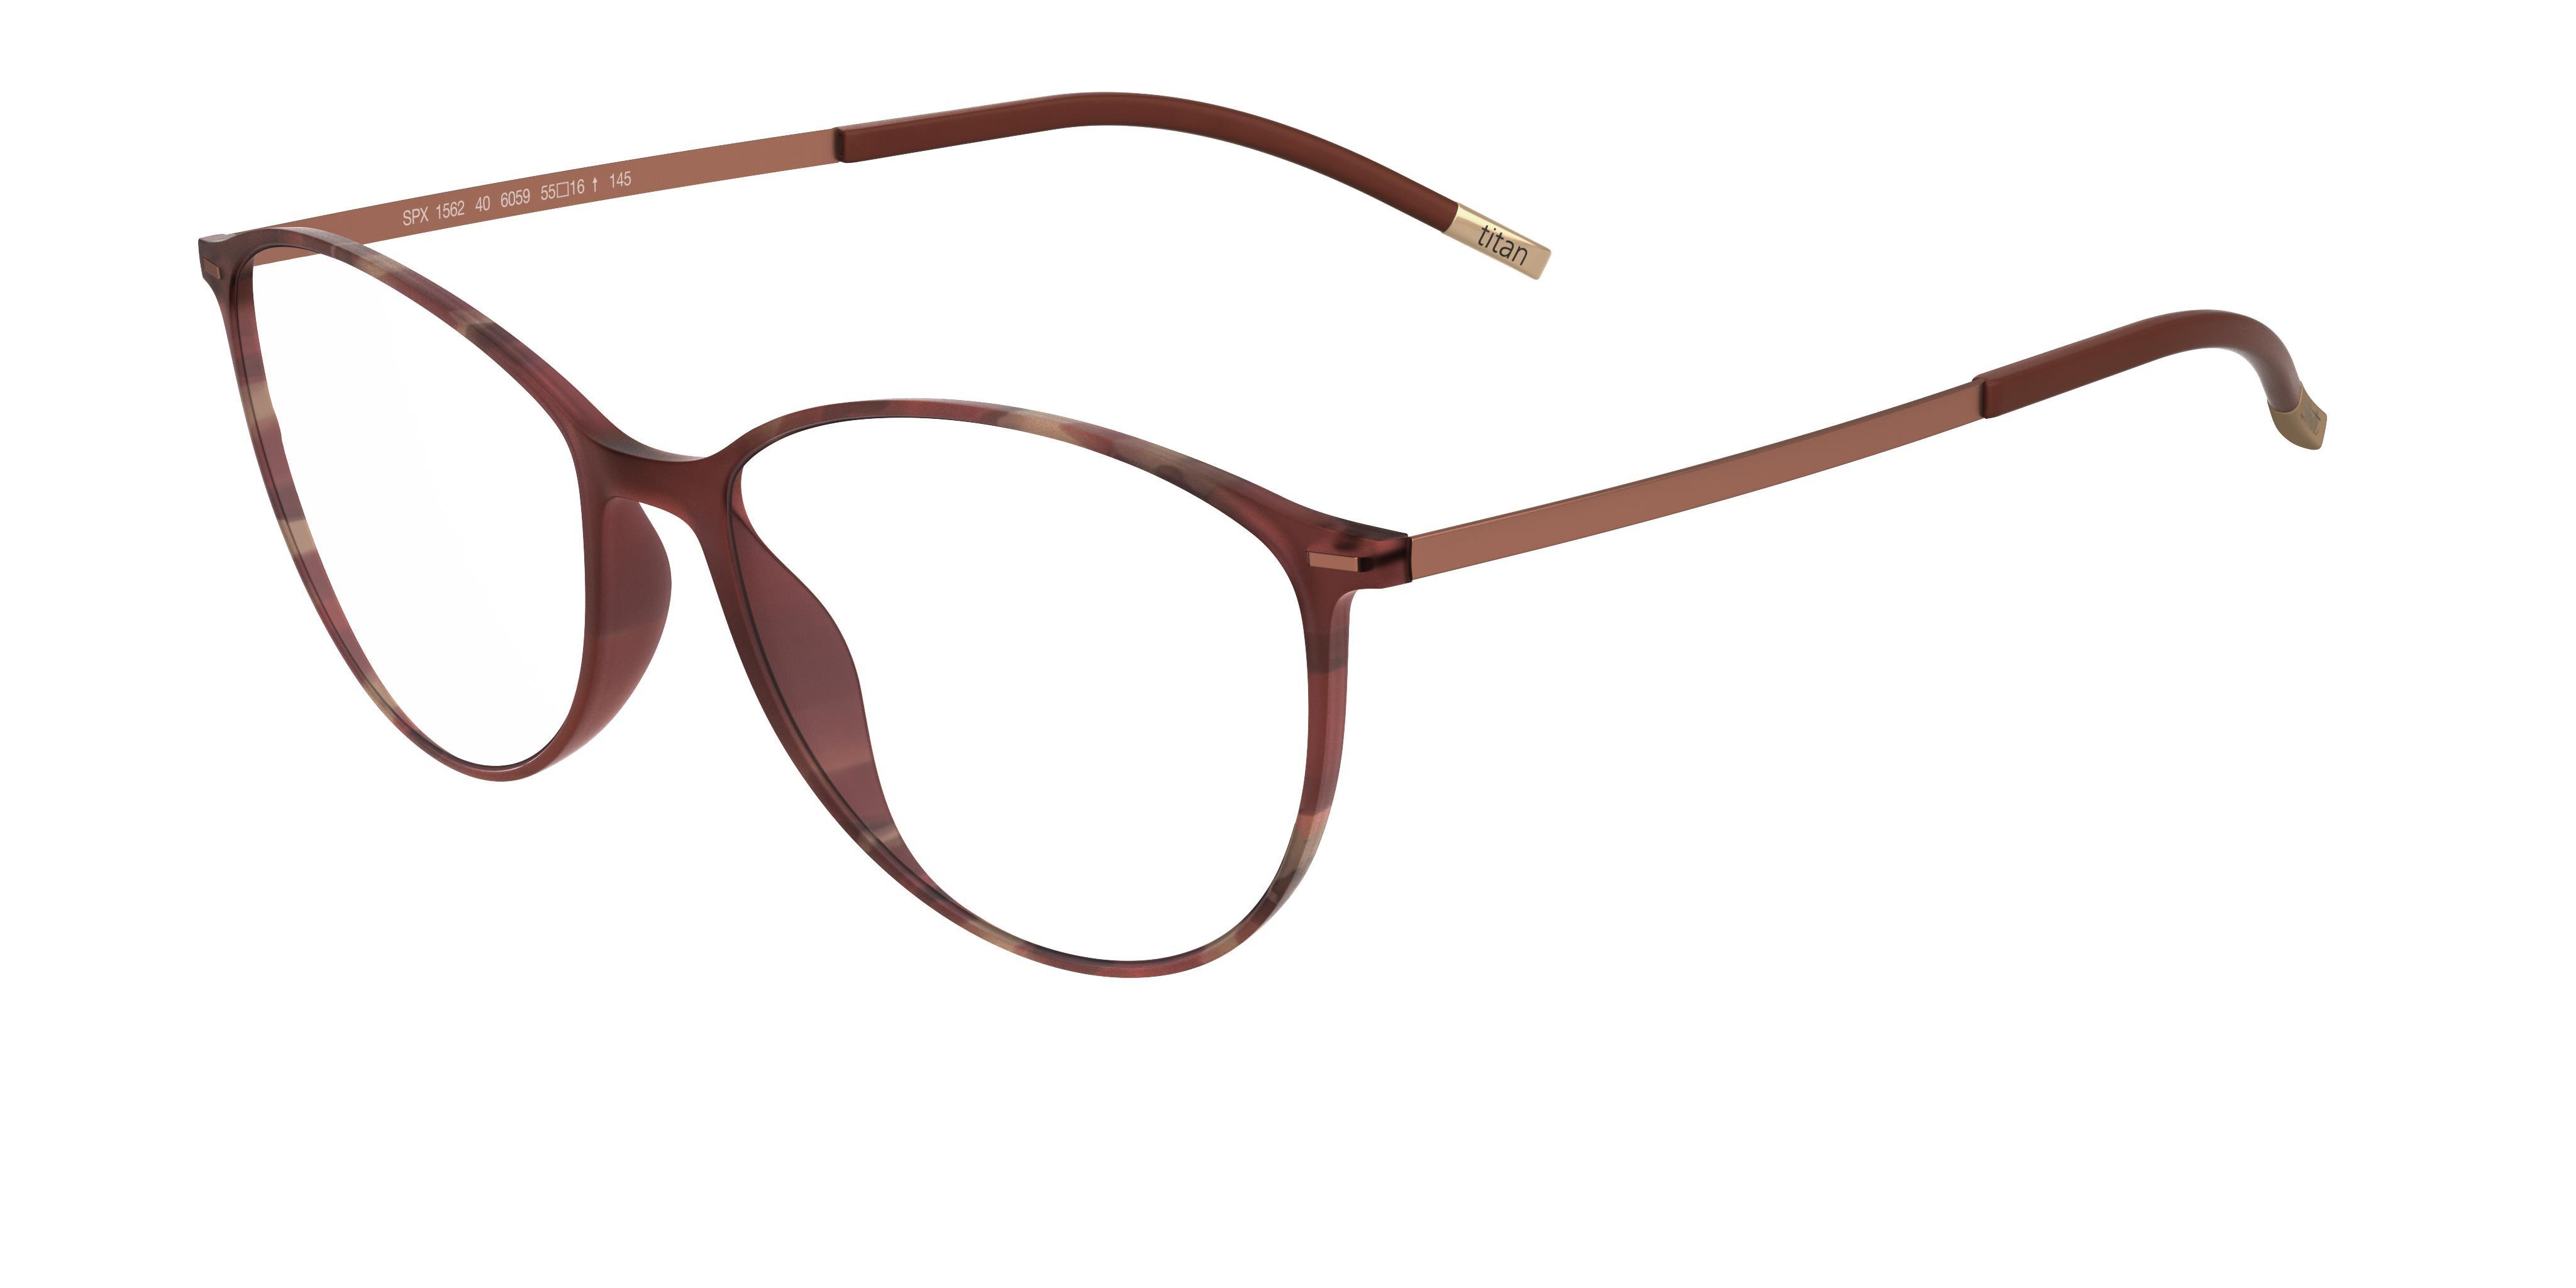 444595d06a861 Vision Service Opticians - Search page